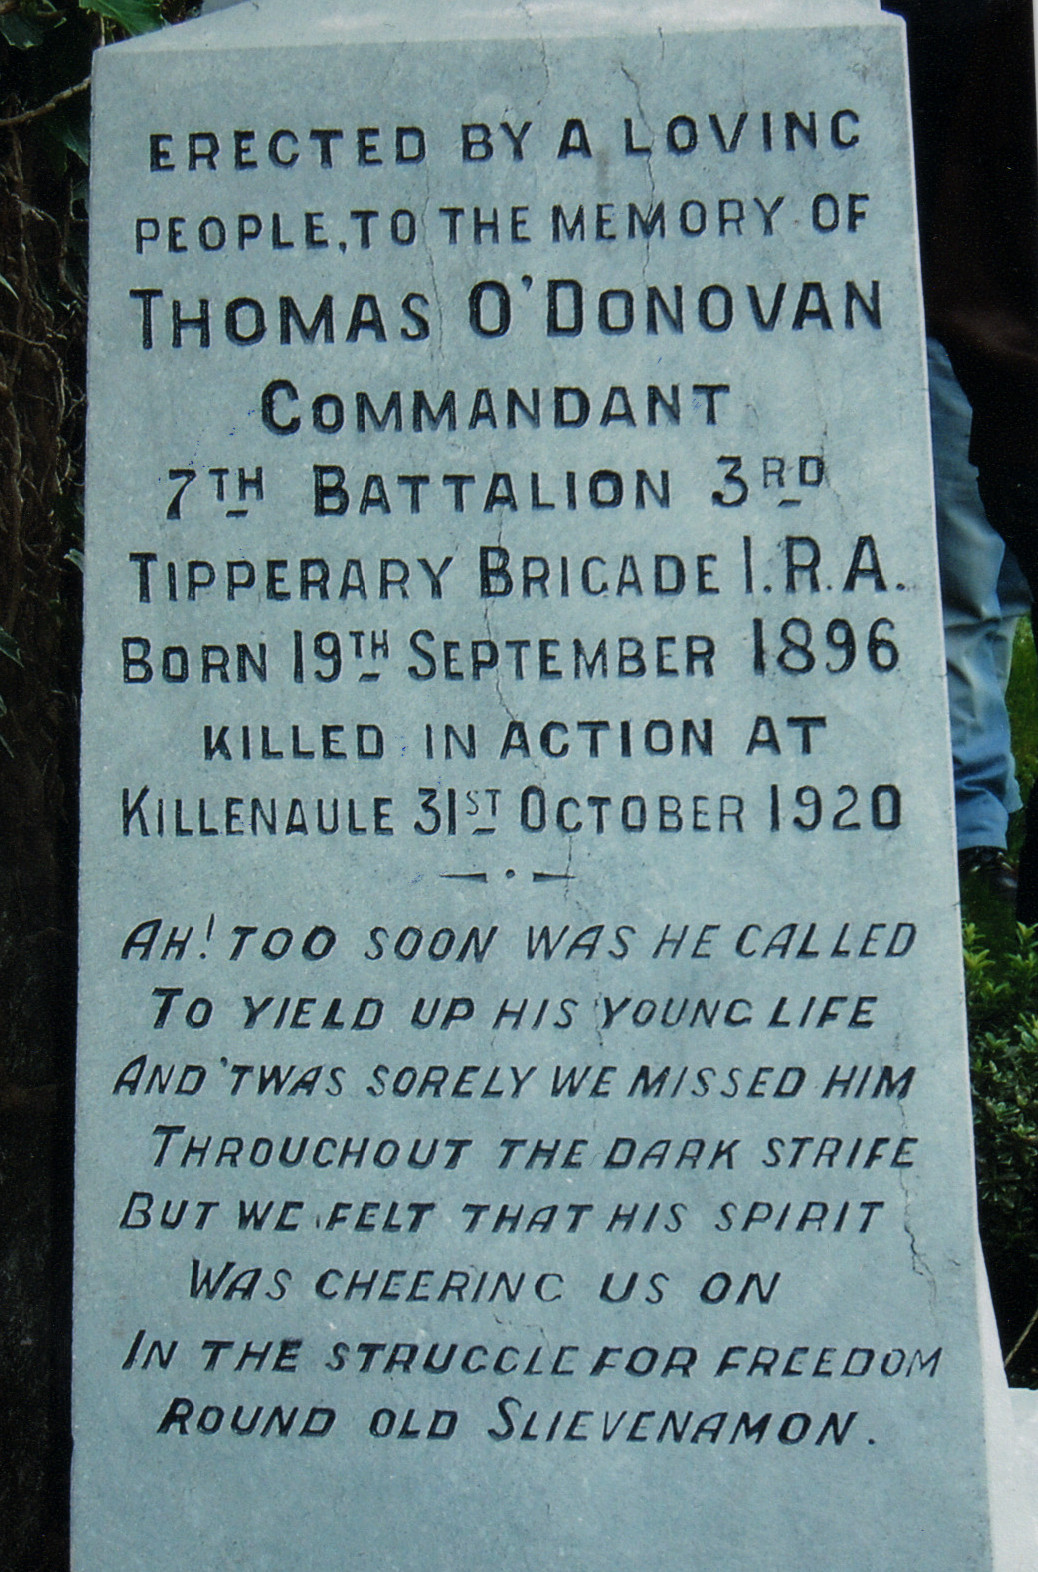 Commemoration of Tom O'Donovan